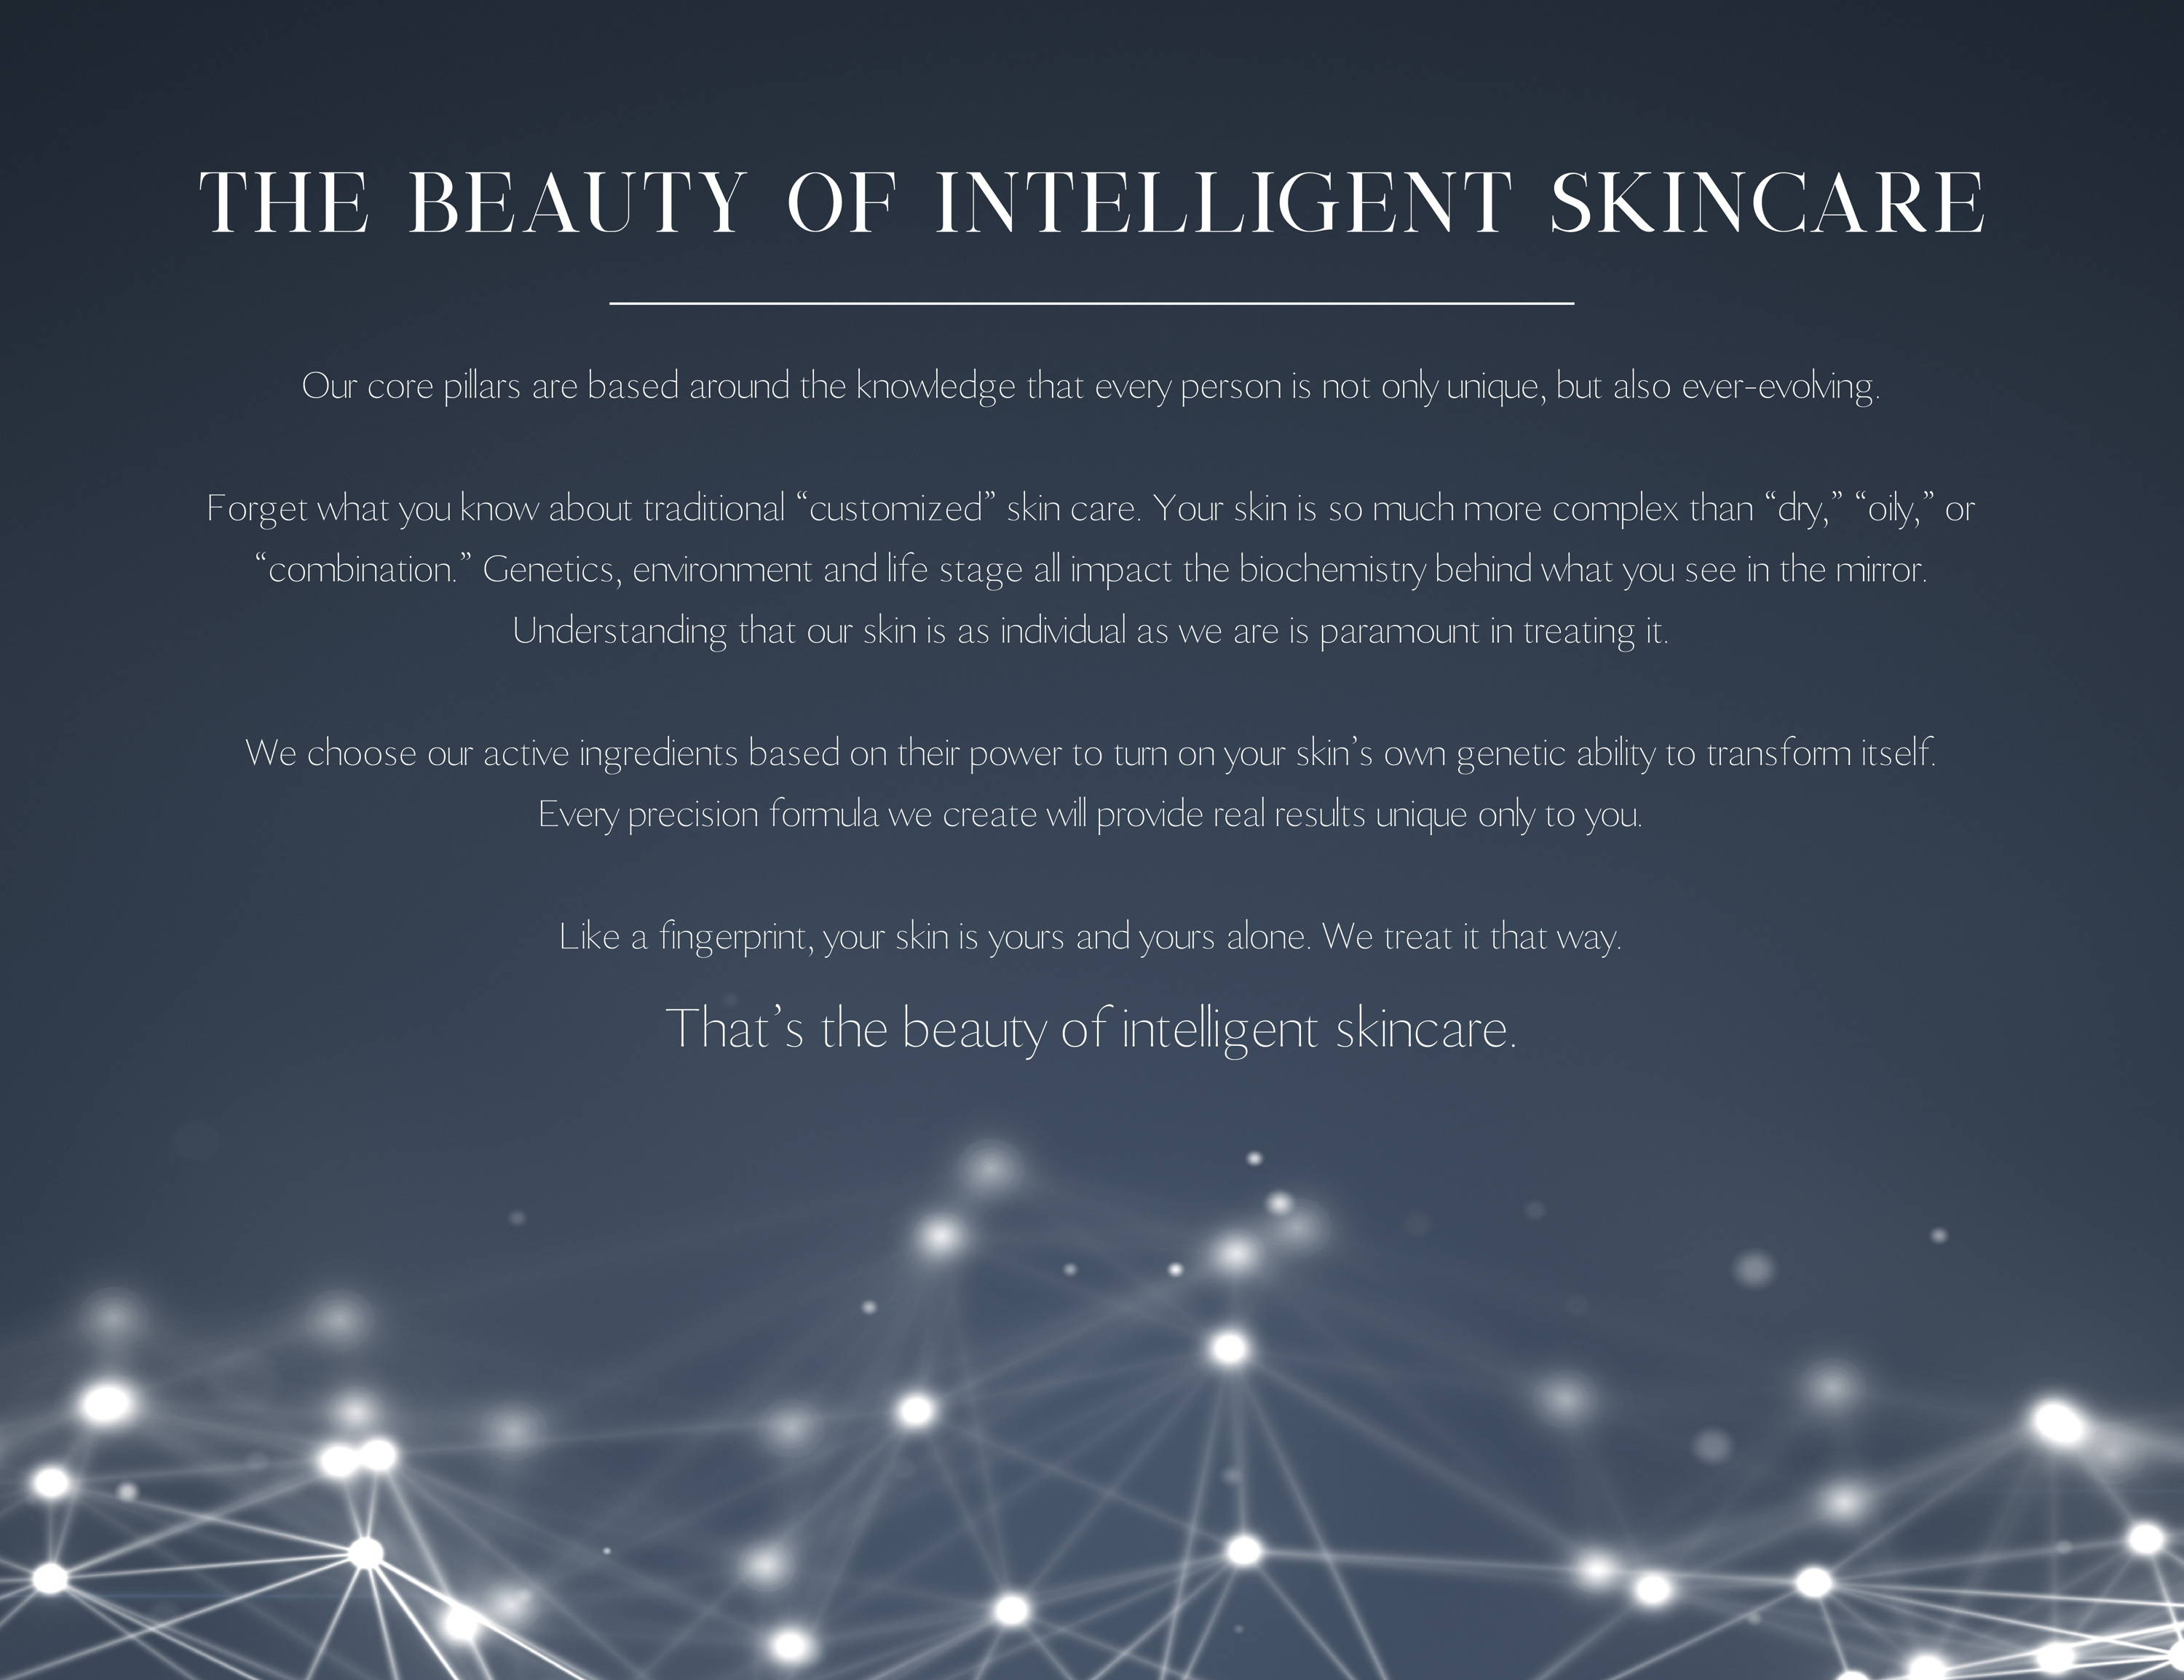 The Beauty of Intelligent Skincare